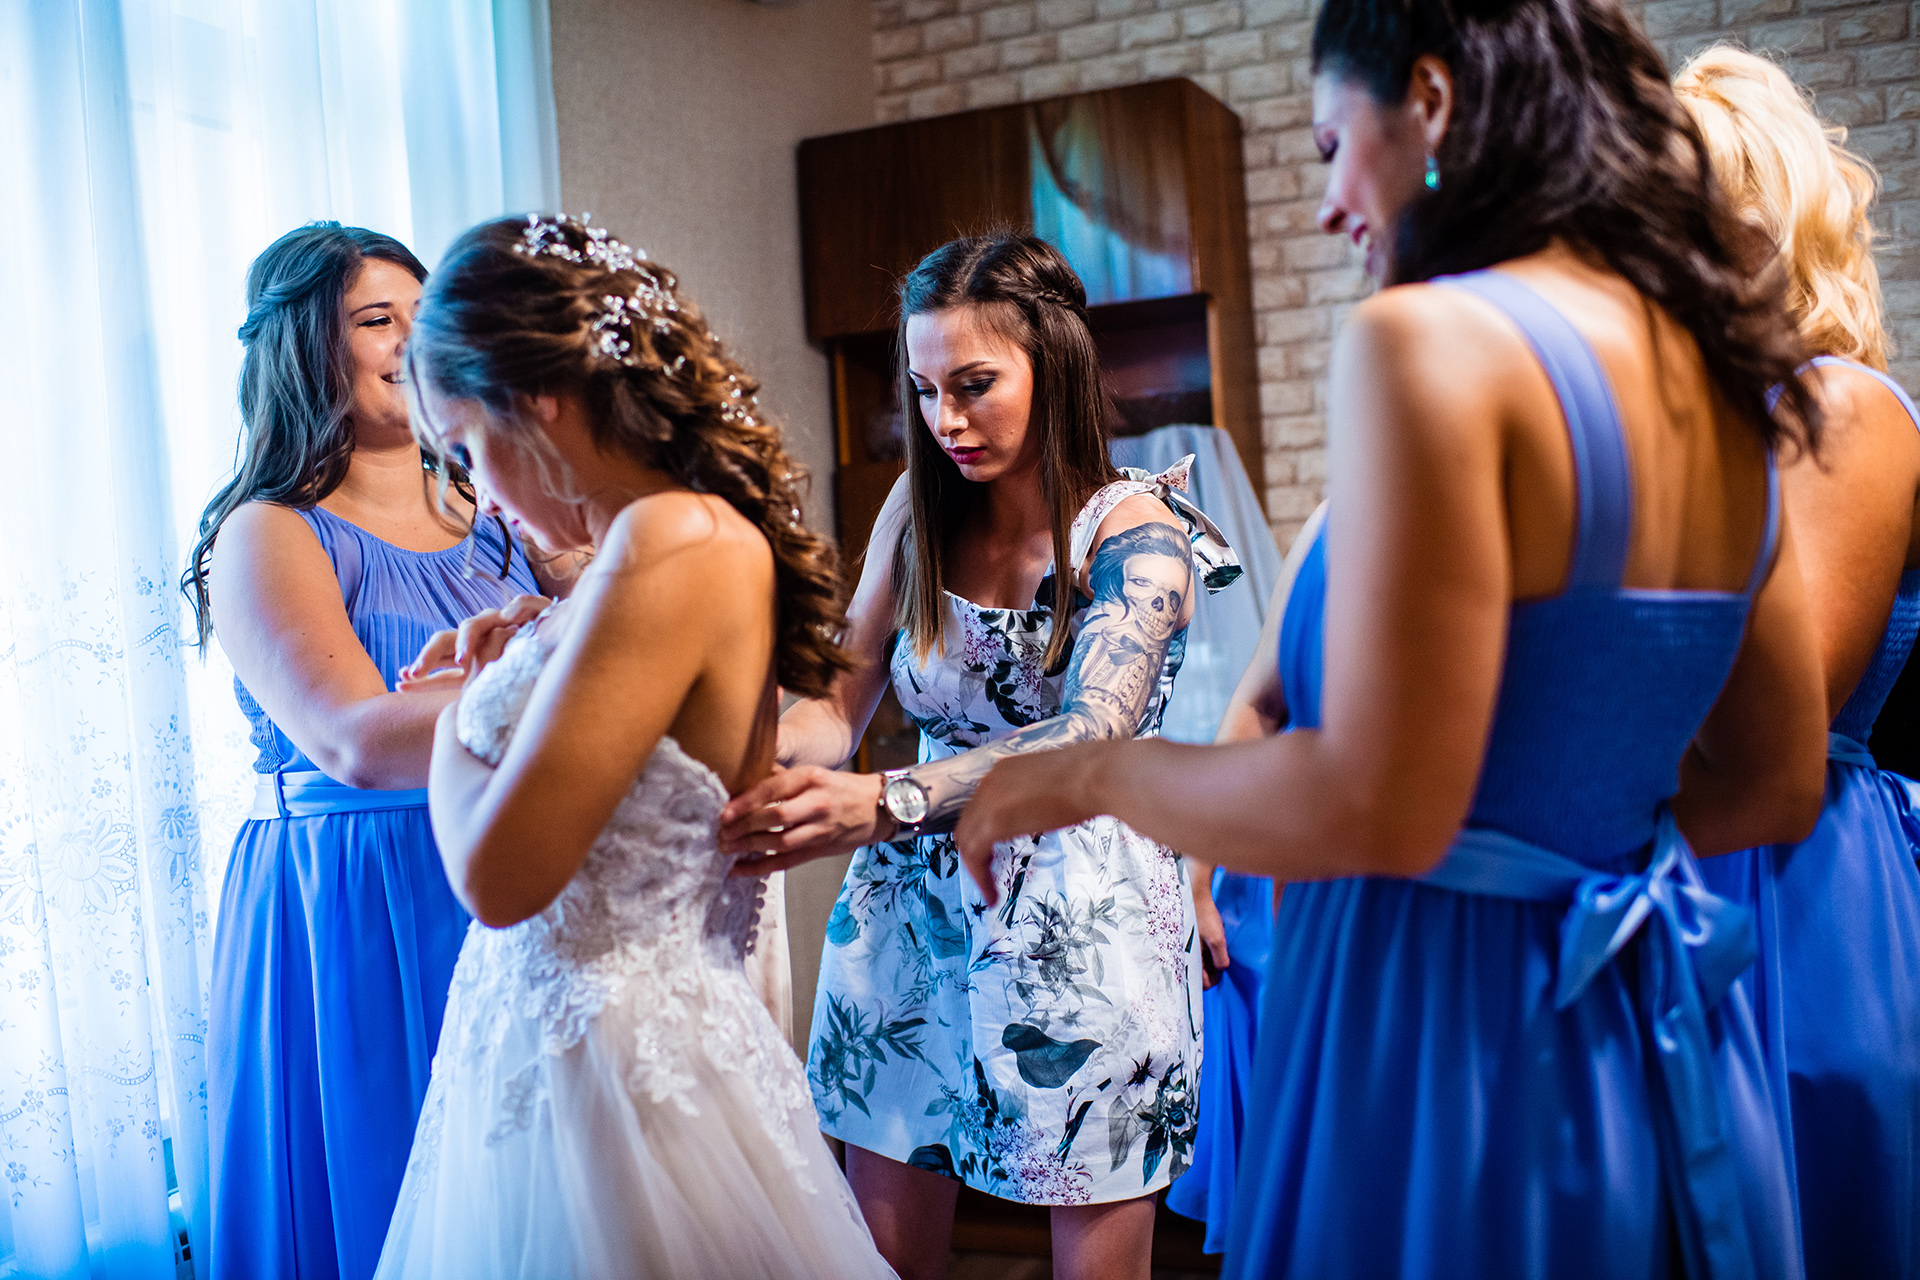 Ruse Wedding Photographer | The bridesmaids surround the bride while helping her with her gown